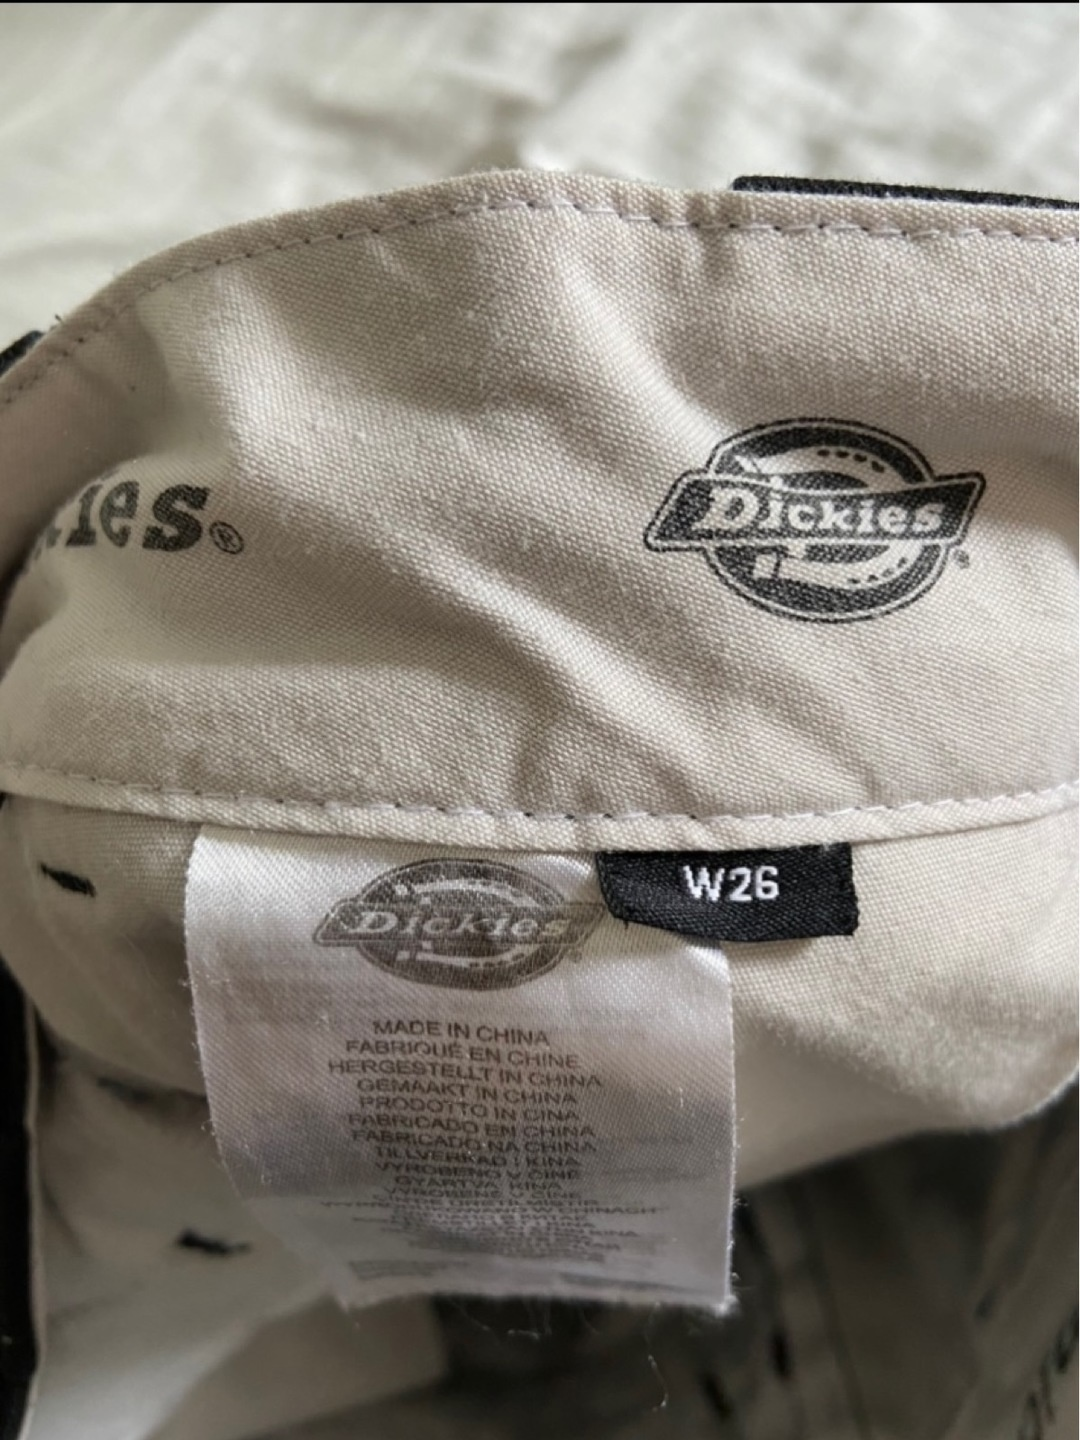 Women's trousers & jeans - DICKIES photo 4